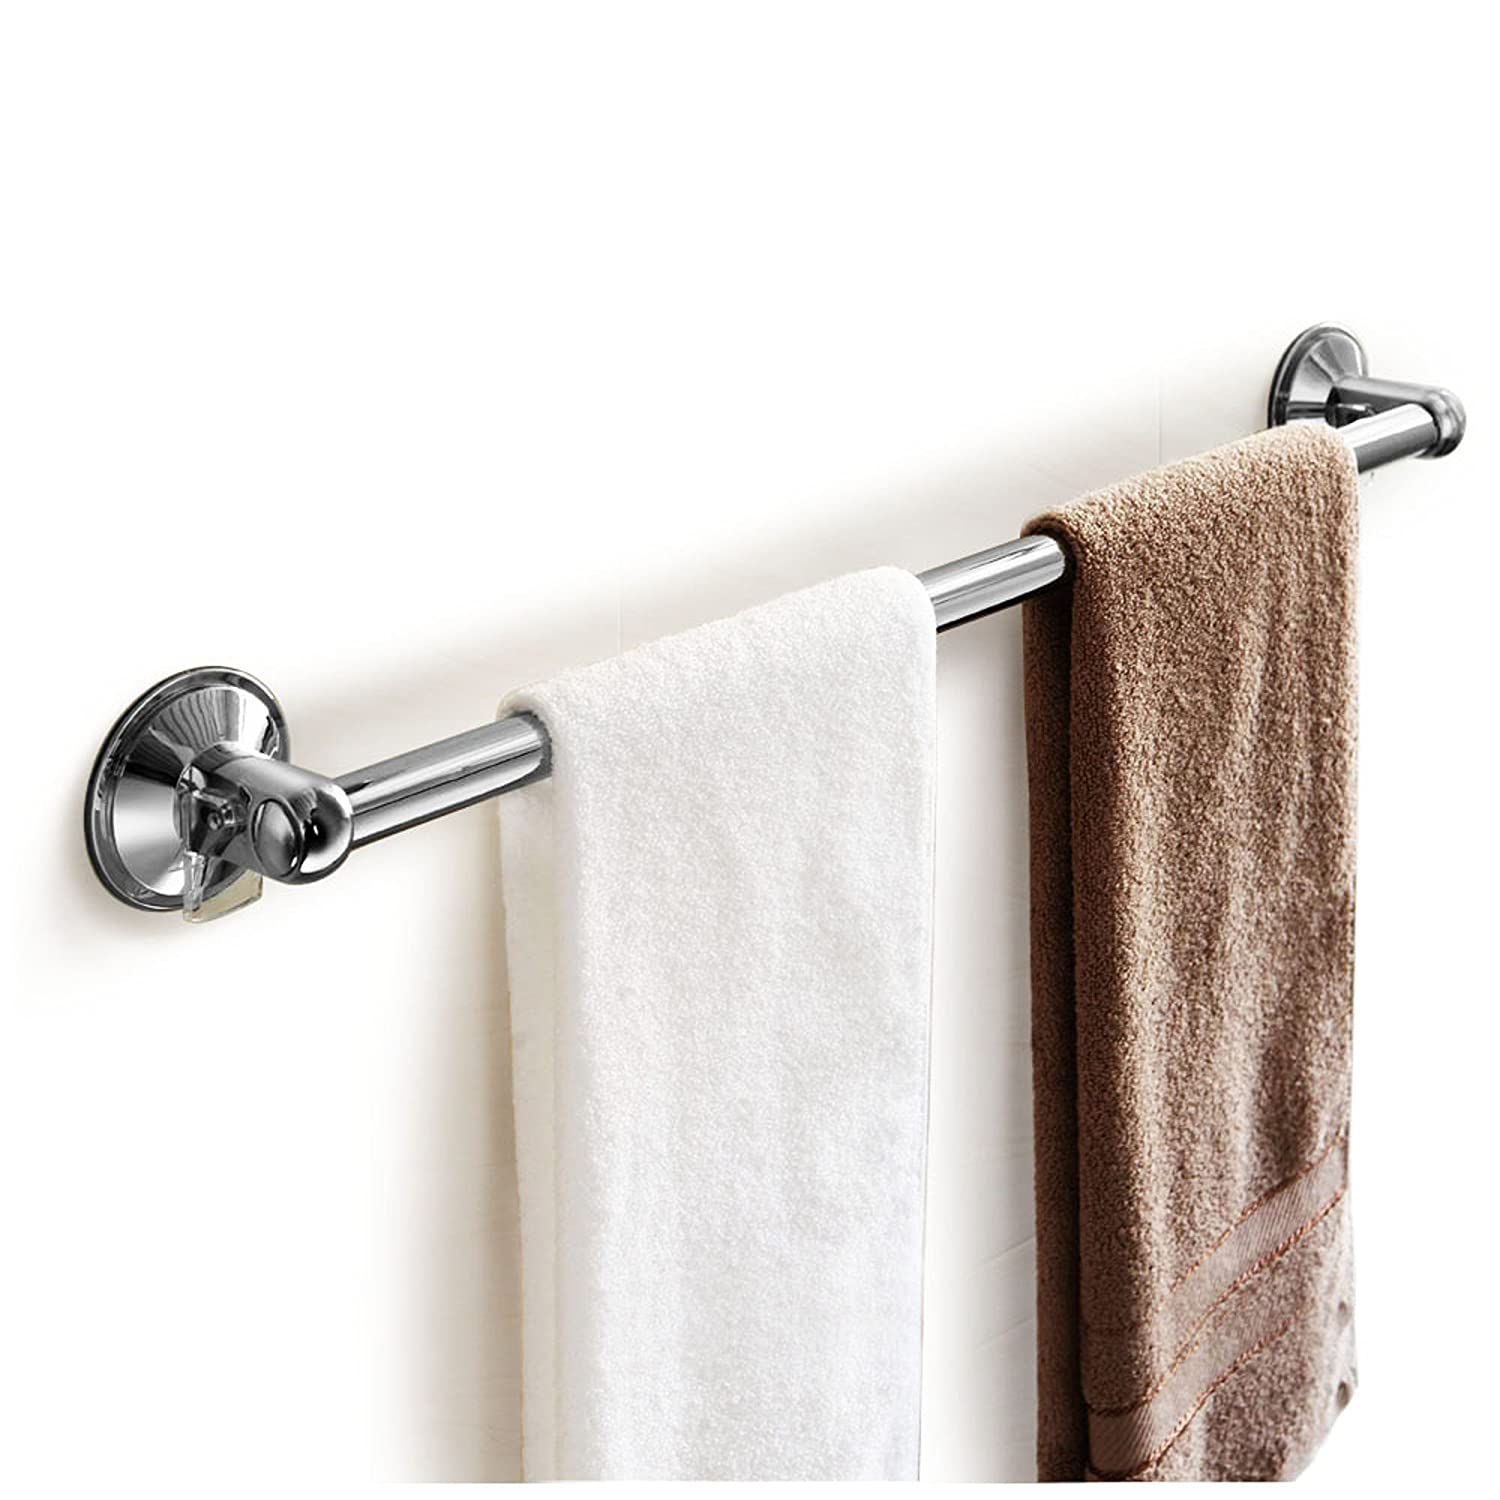 HotelSpa AquaCare series Insta-mount 18 towel Bar by HotelSpa Interlink Products 1501